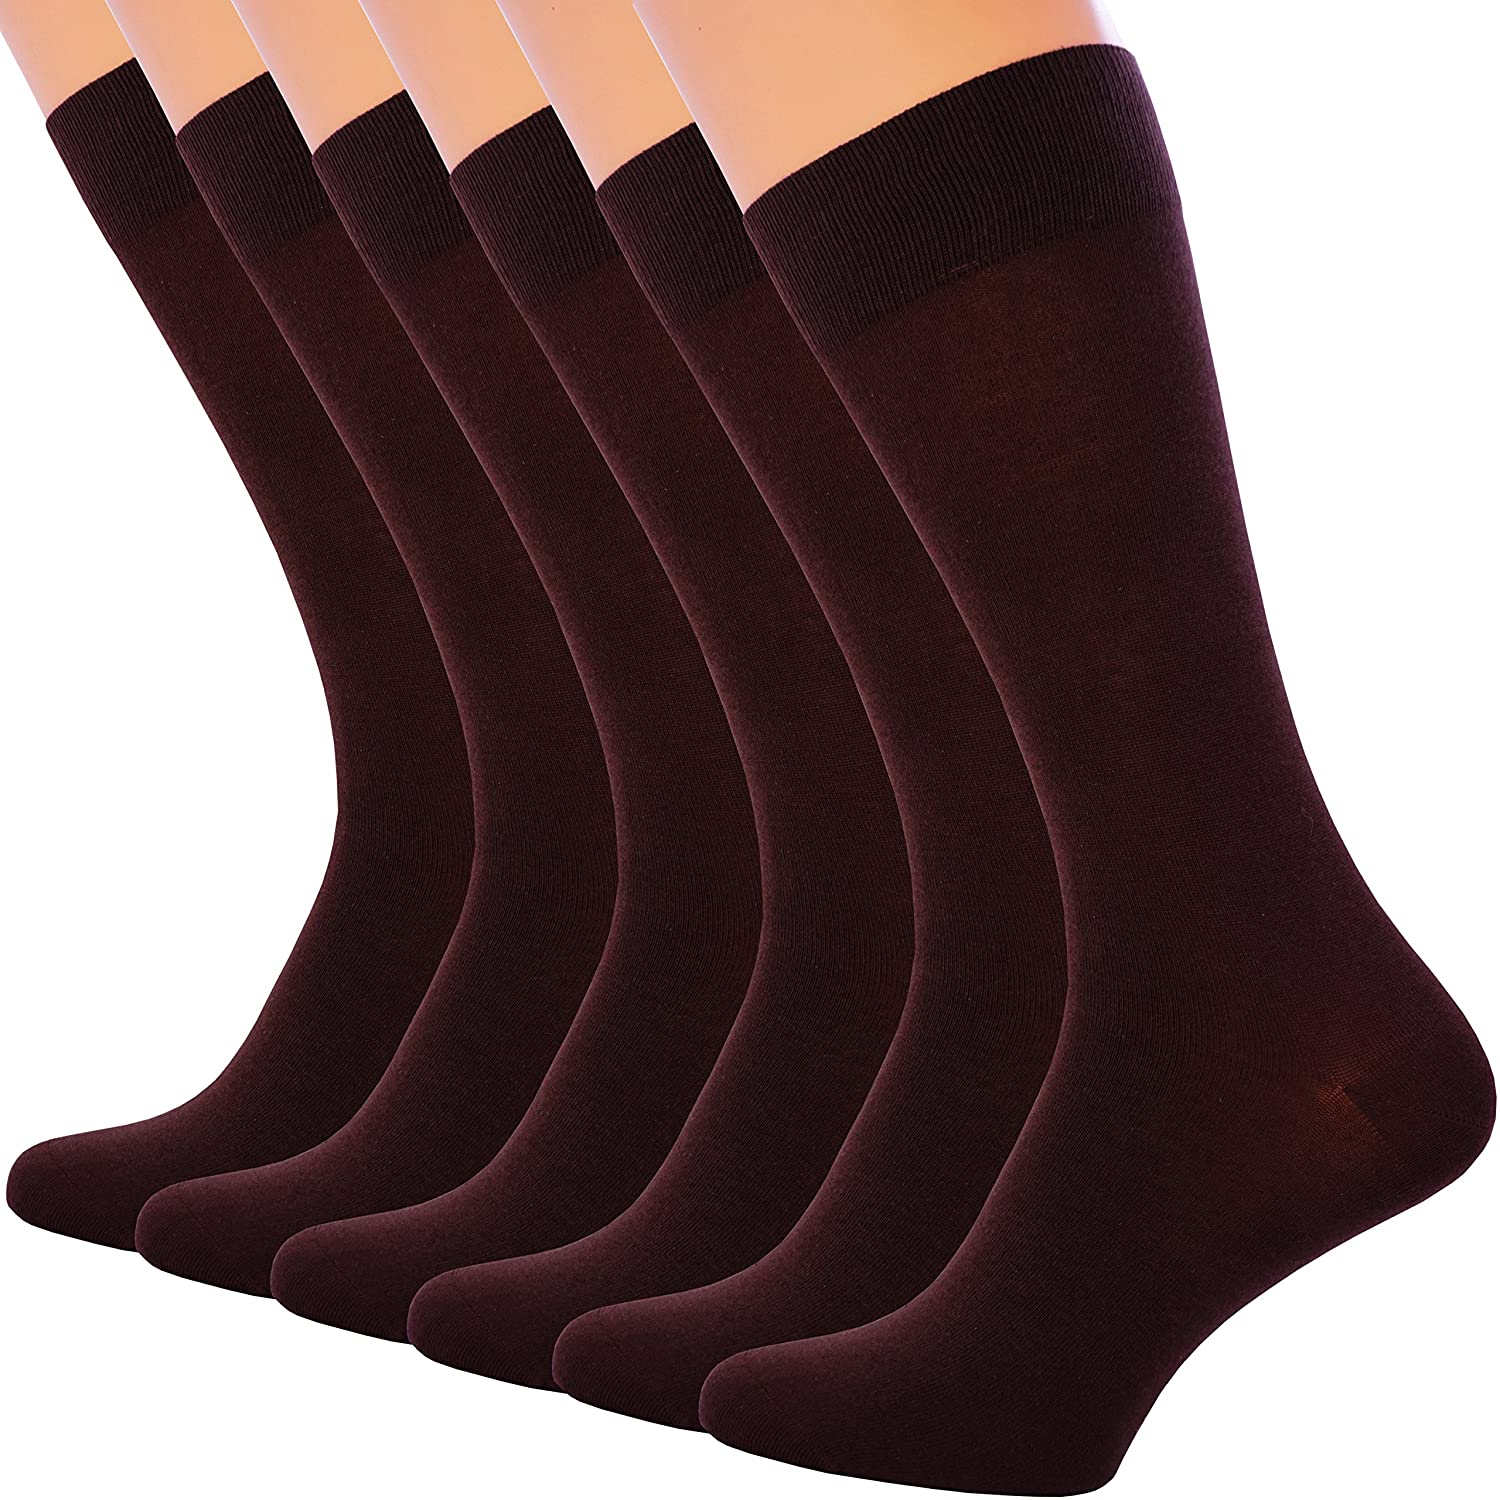 6 Pack Dress Socks for Mens Cotton Mid Calf Black Brown Dark Blue RONDO Dress & Trouser Socks